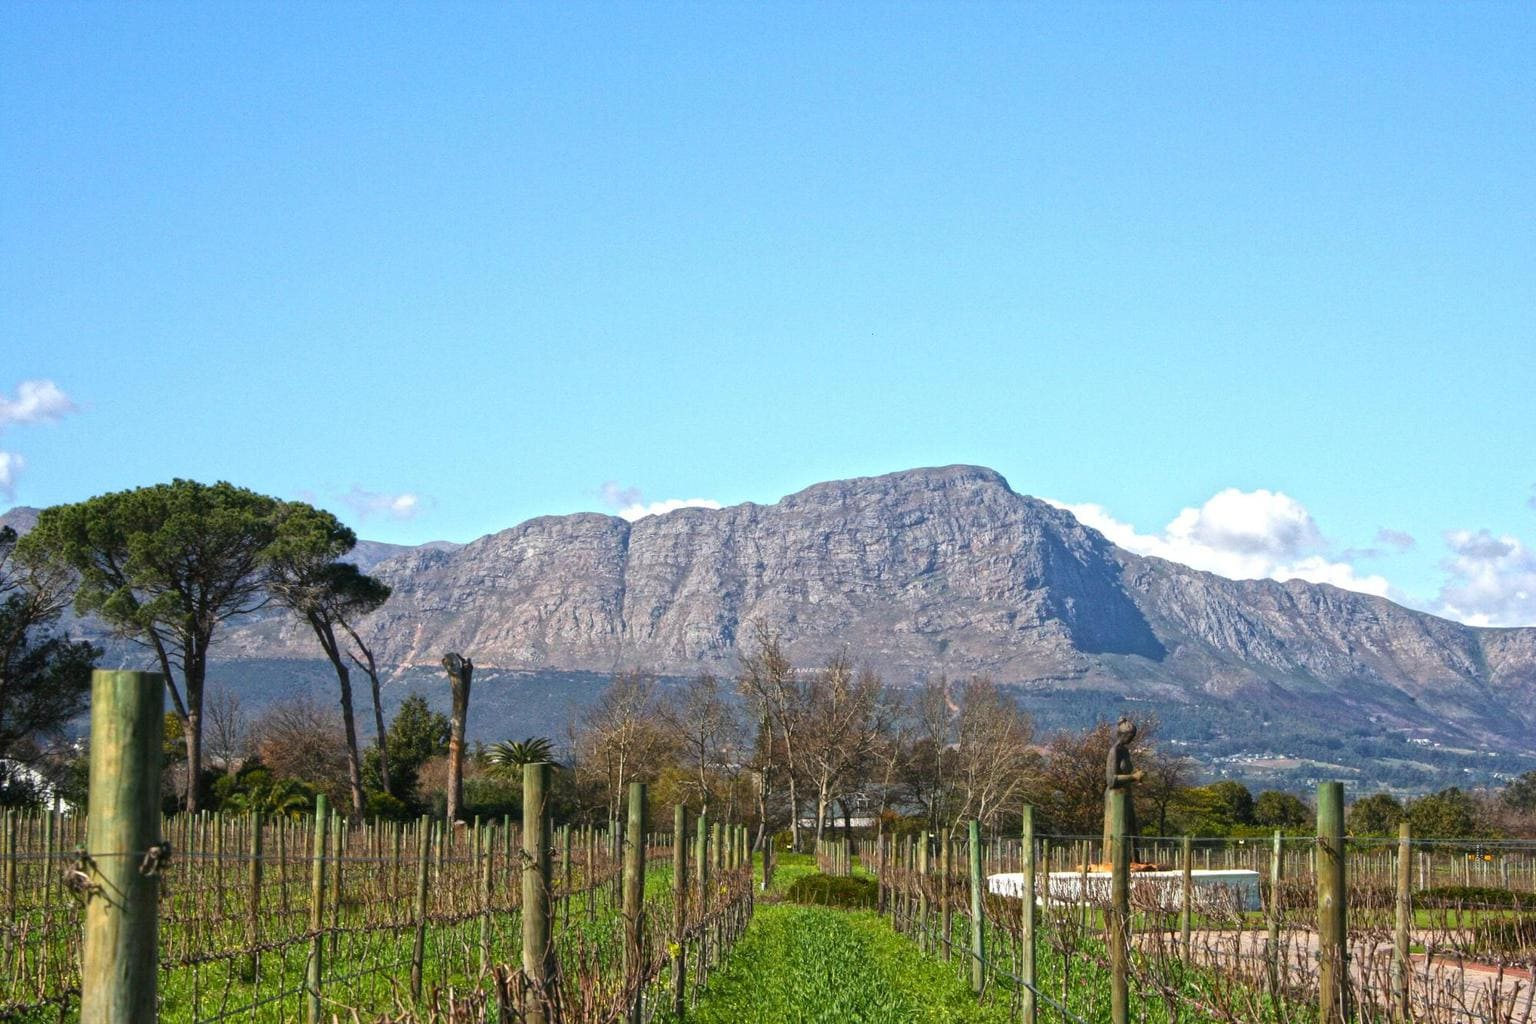 Franschhoek is one of the wards in South Africa